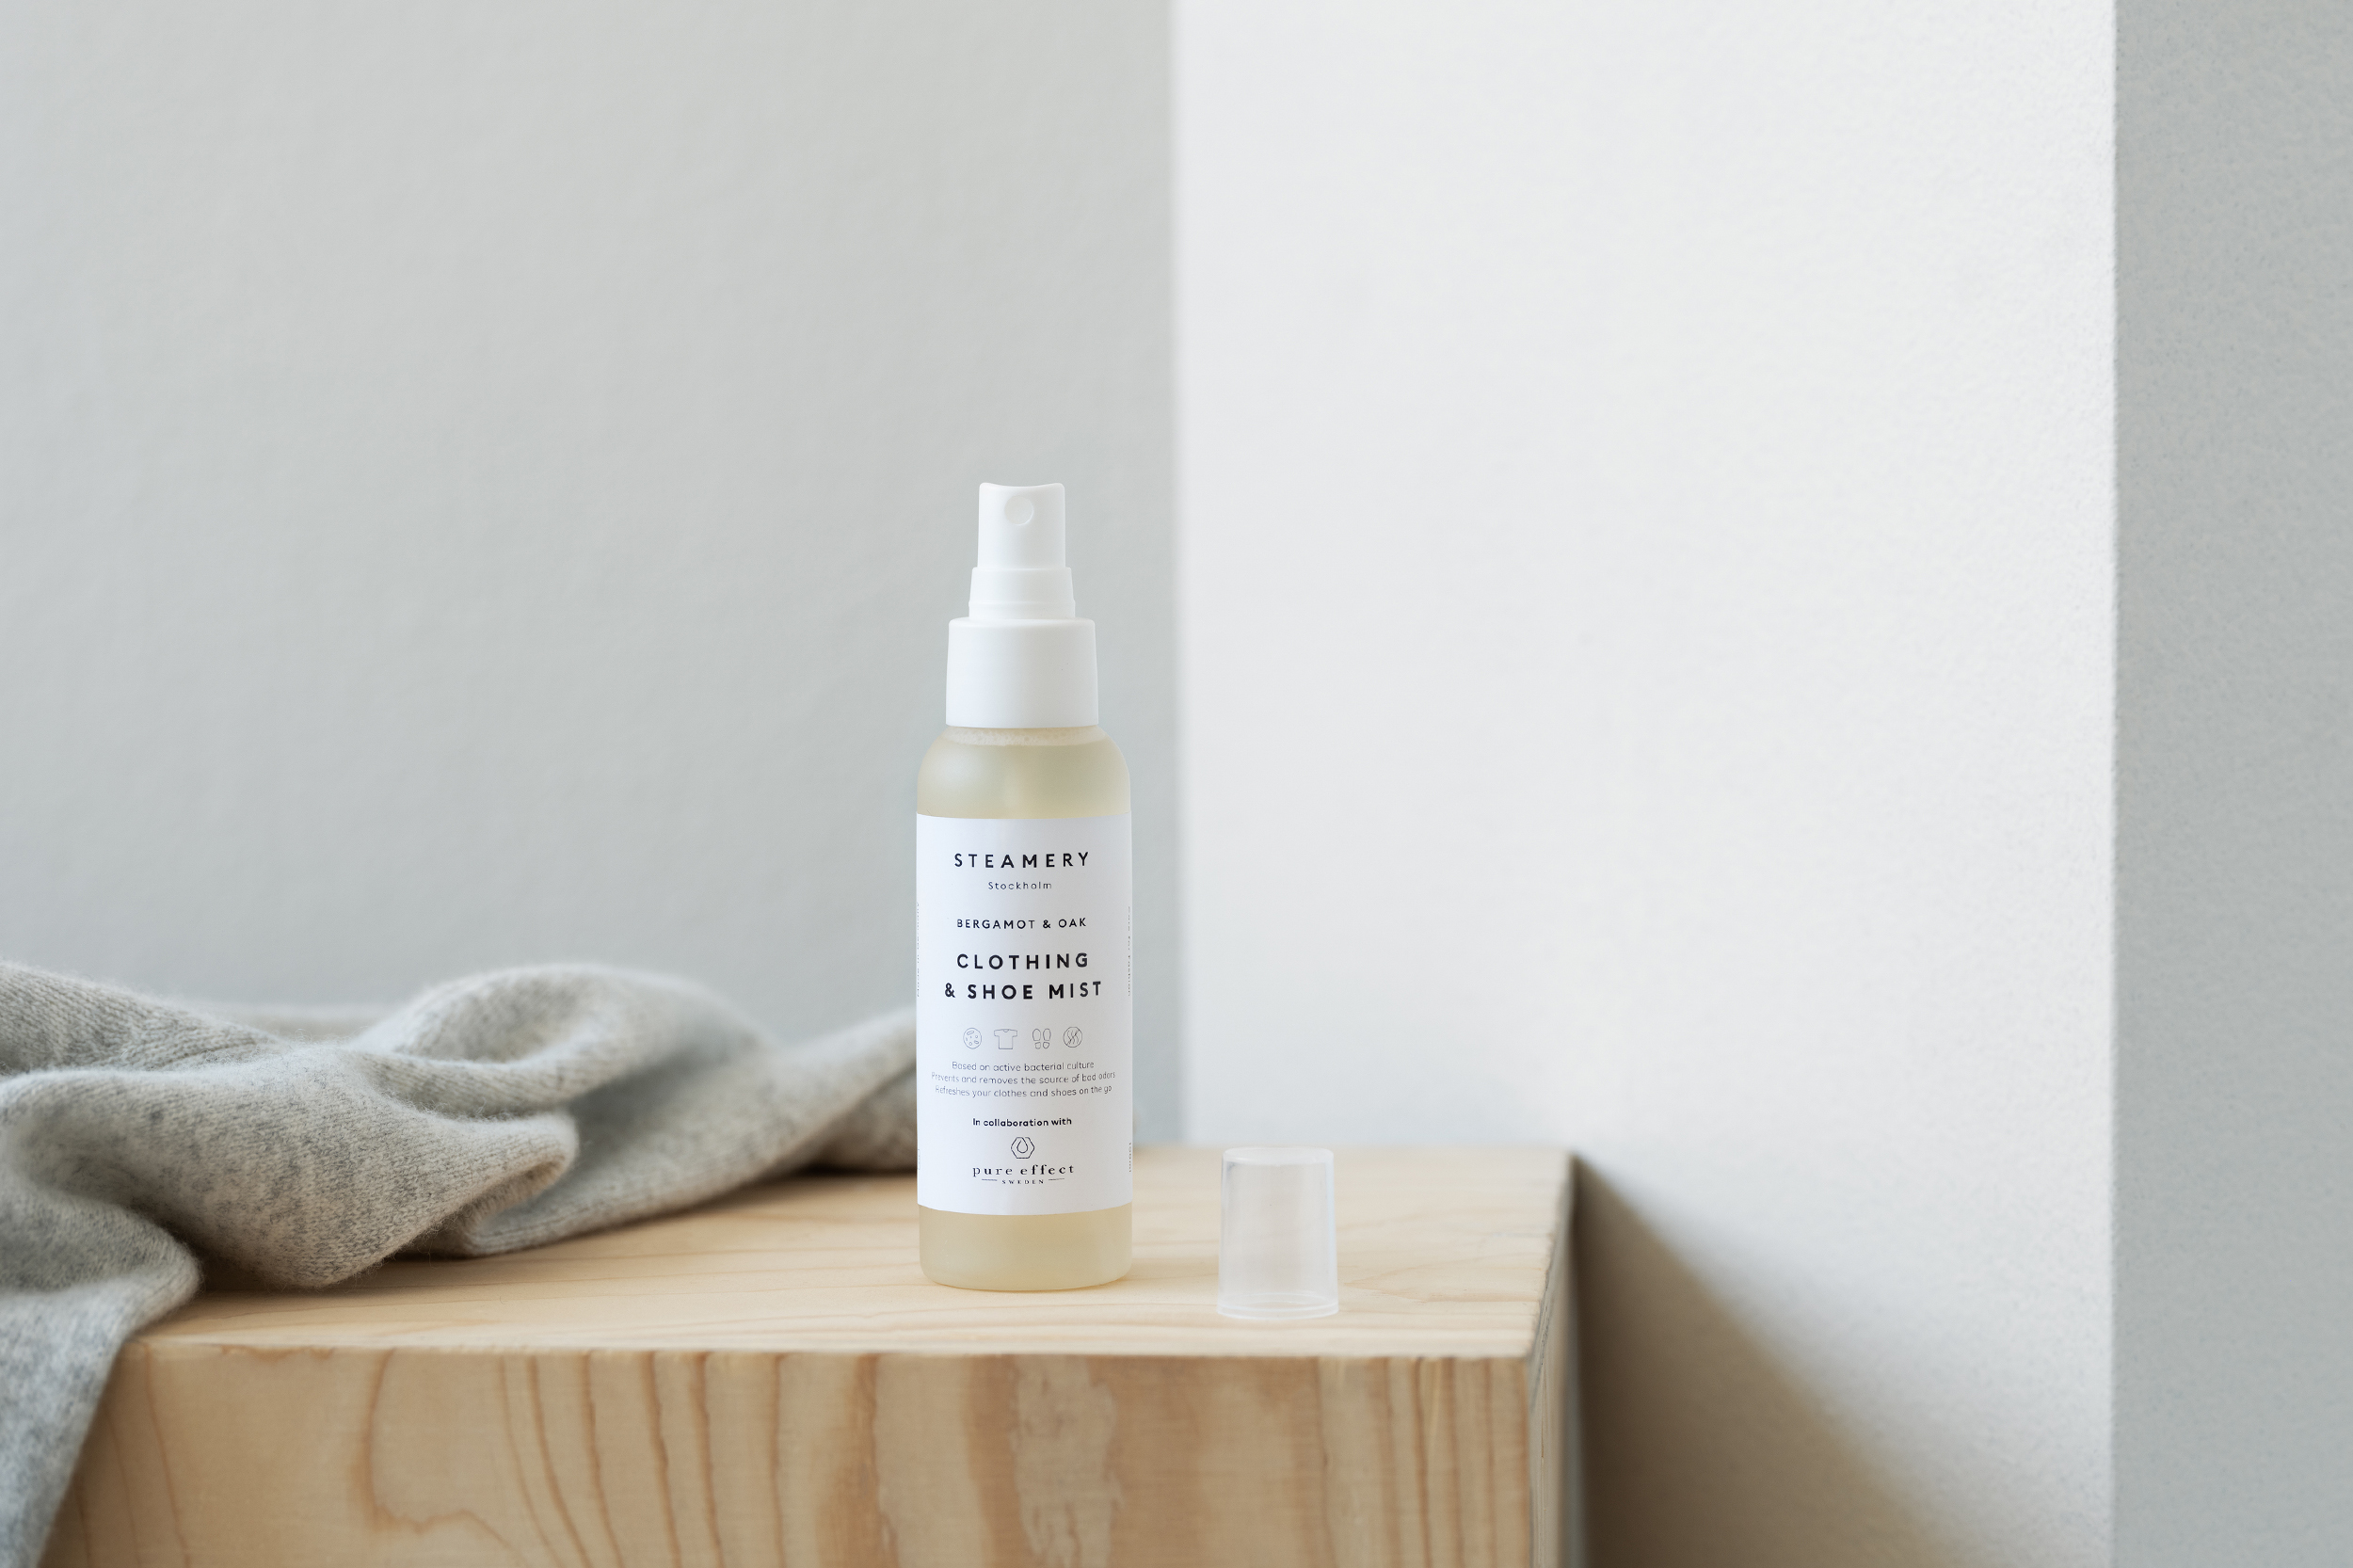 The Steamery Clothing & Shoe Mist